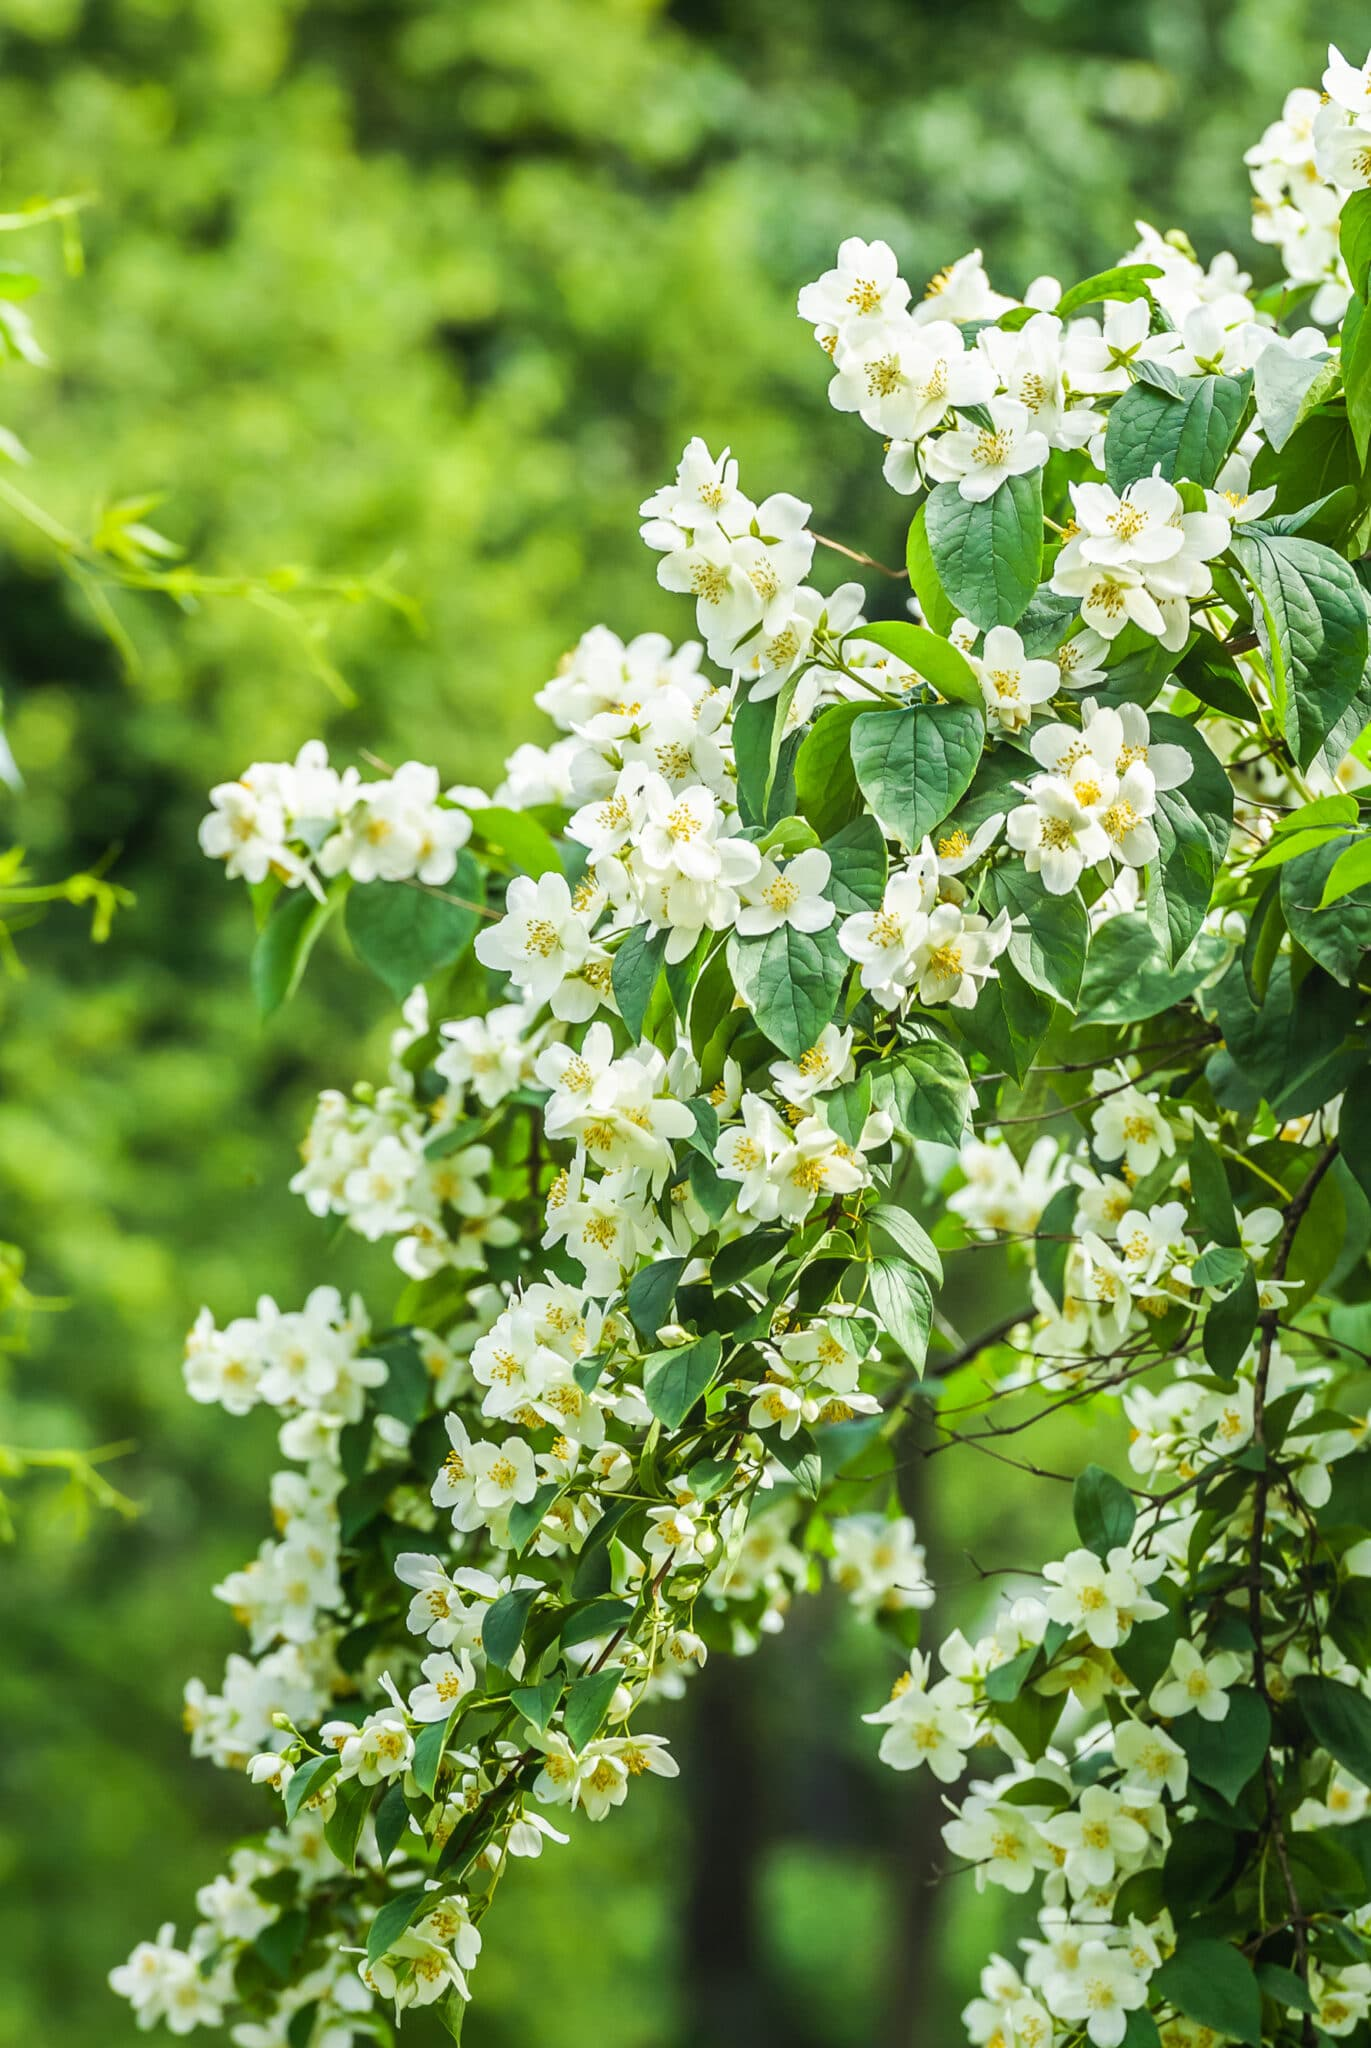 A mock orange plant filled with tiny white fully opened blooms.